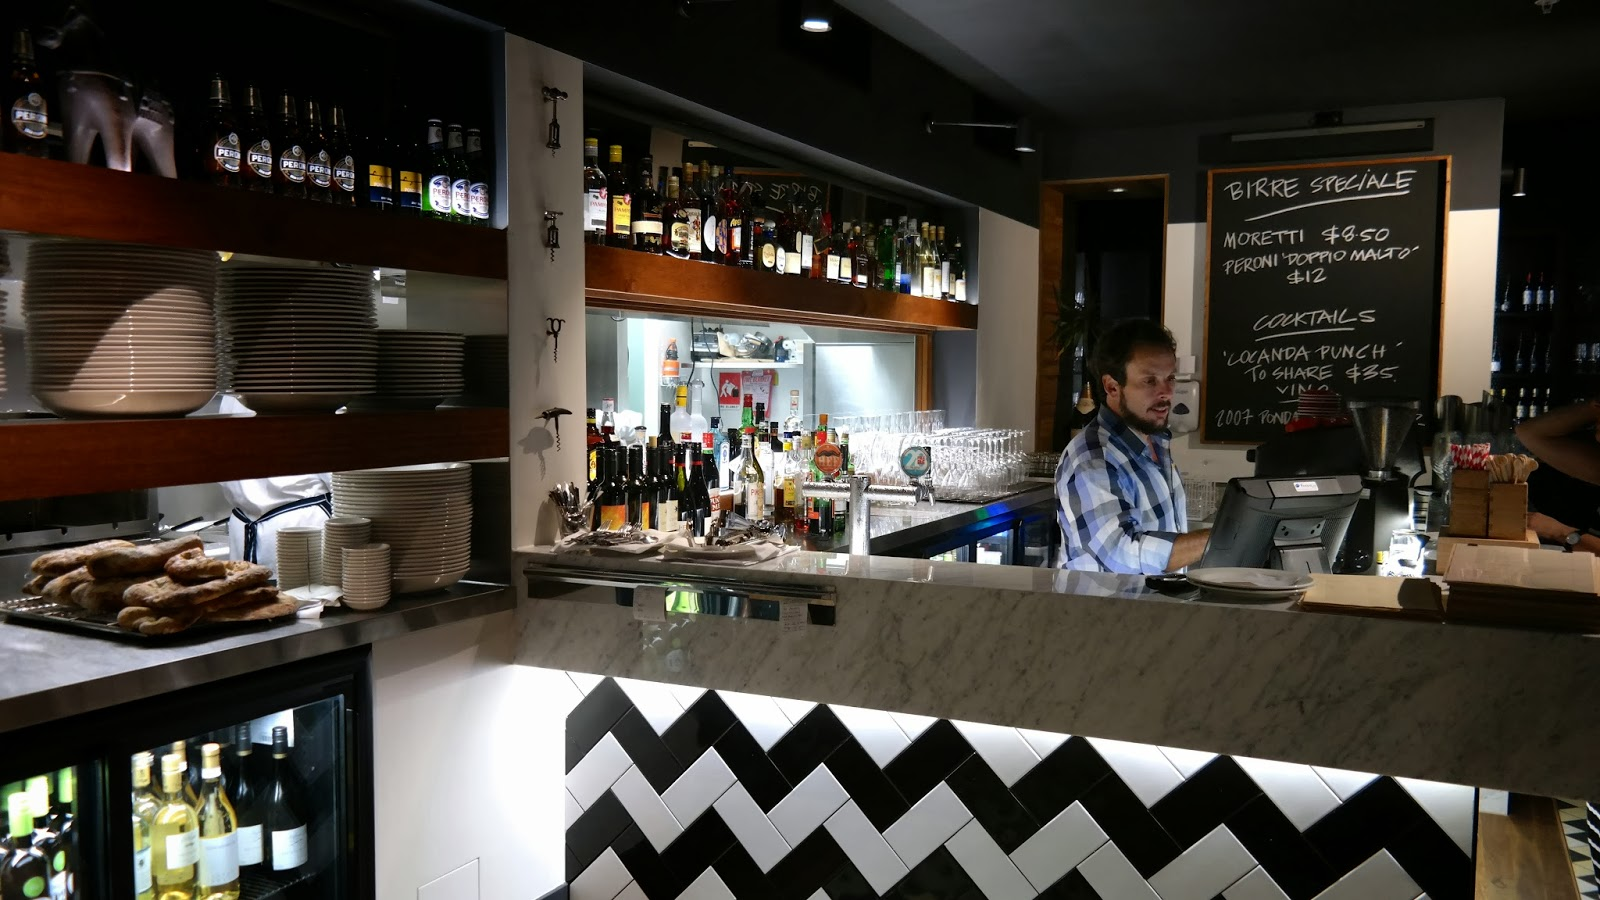 Foodmeupscotty locanda osteria and bar simple italian fare but with strong flavours - Bar area in kitchen ...